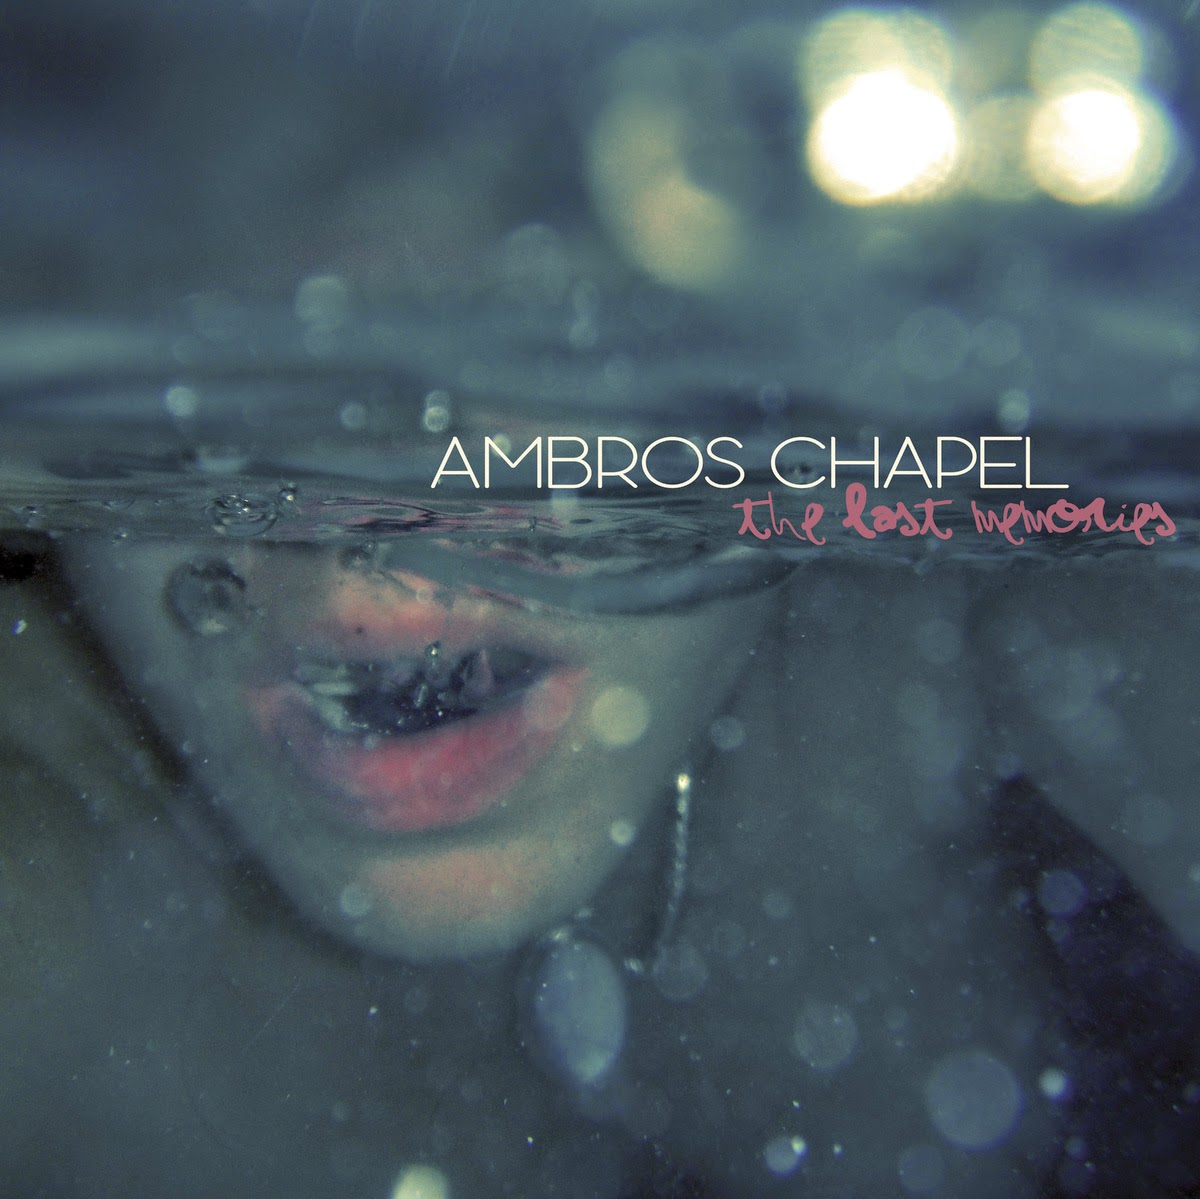 AMBROS CHAPEL - (2014) The last memories